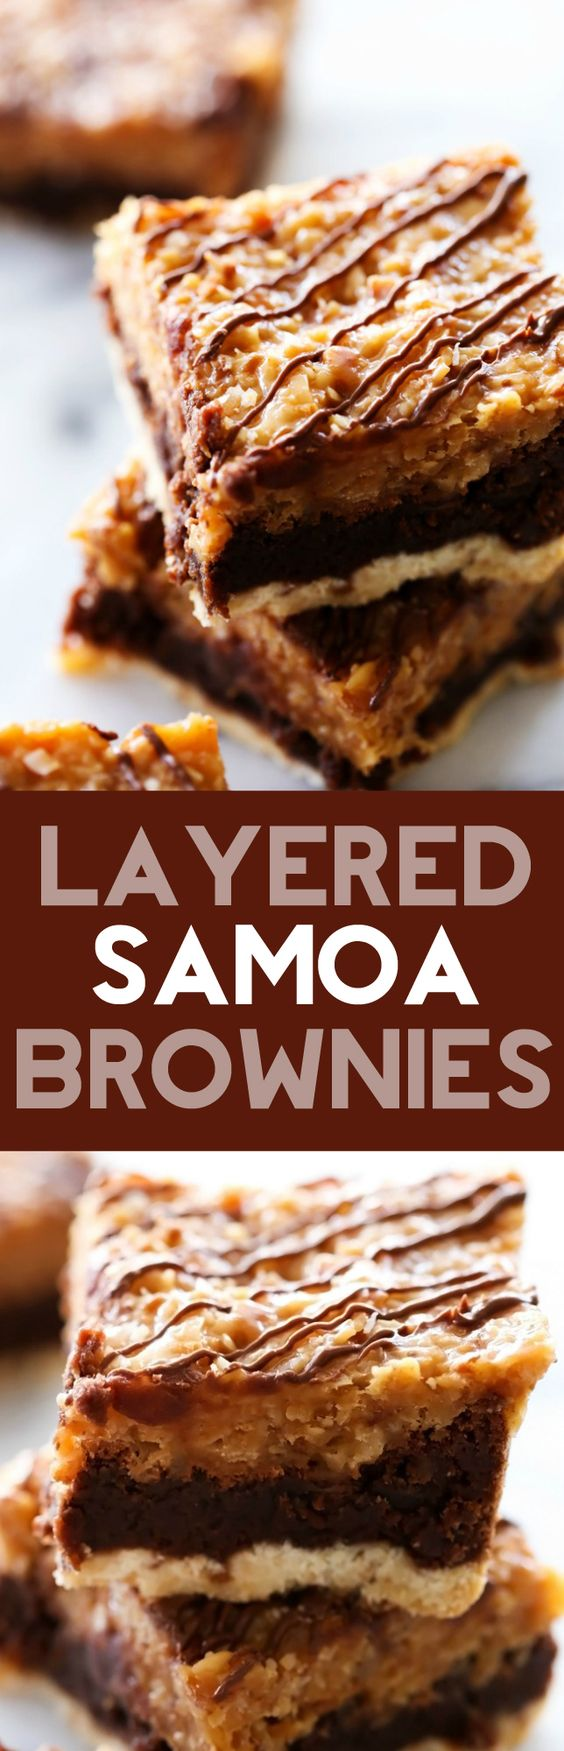 Layered Samoa Brownies... Layers of shortbread cookie, rich fudgy brownies and a delicious chewy coconut caramel topping. These brownies are textured with three different layers and will be a huge hit!